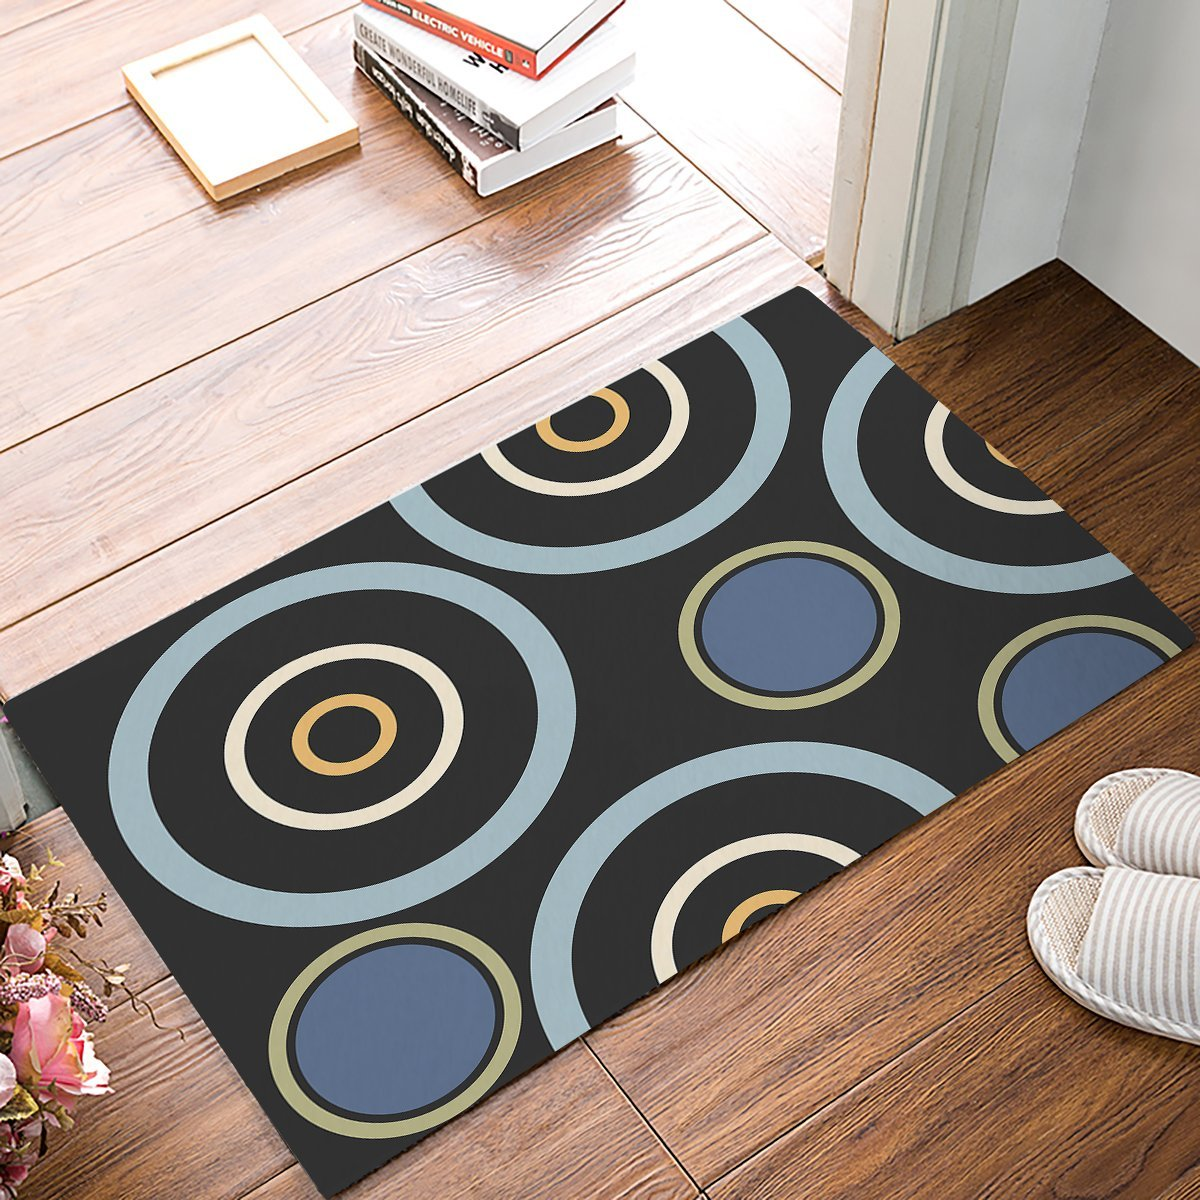 Modern Contemporary Colorful Circles Geometric Welcome Door Mats Kitchen Floor Bath Entrance Rug Mat Absorbent Indoor Bathroom